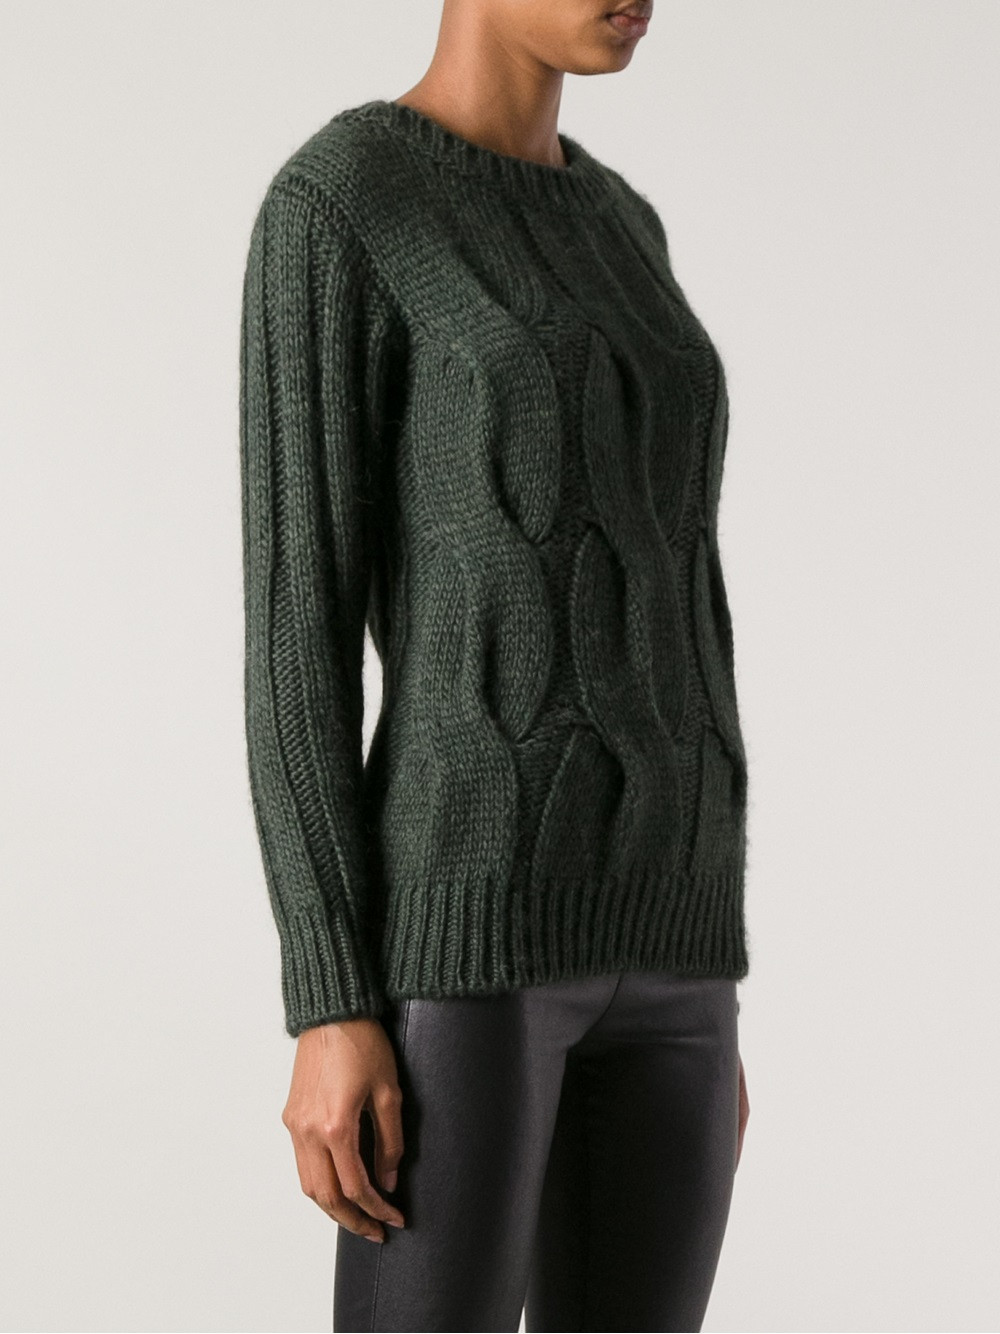 Lyst Moncler grenoble Chunky Cable Knit Sweater in Green